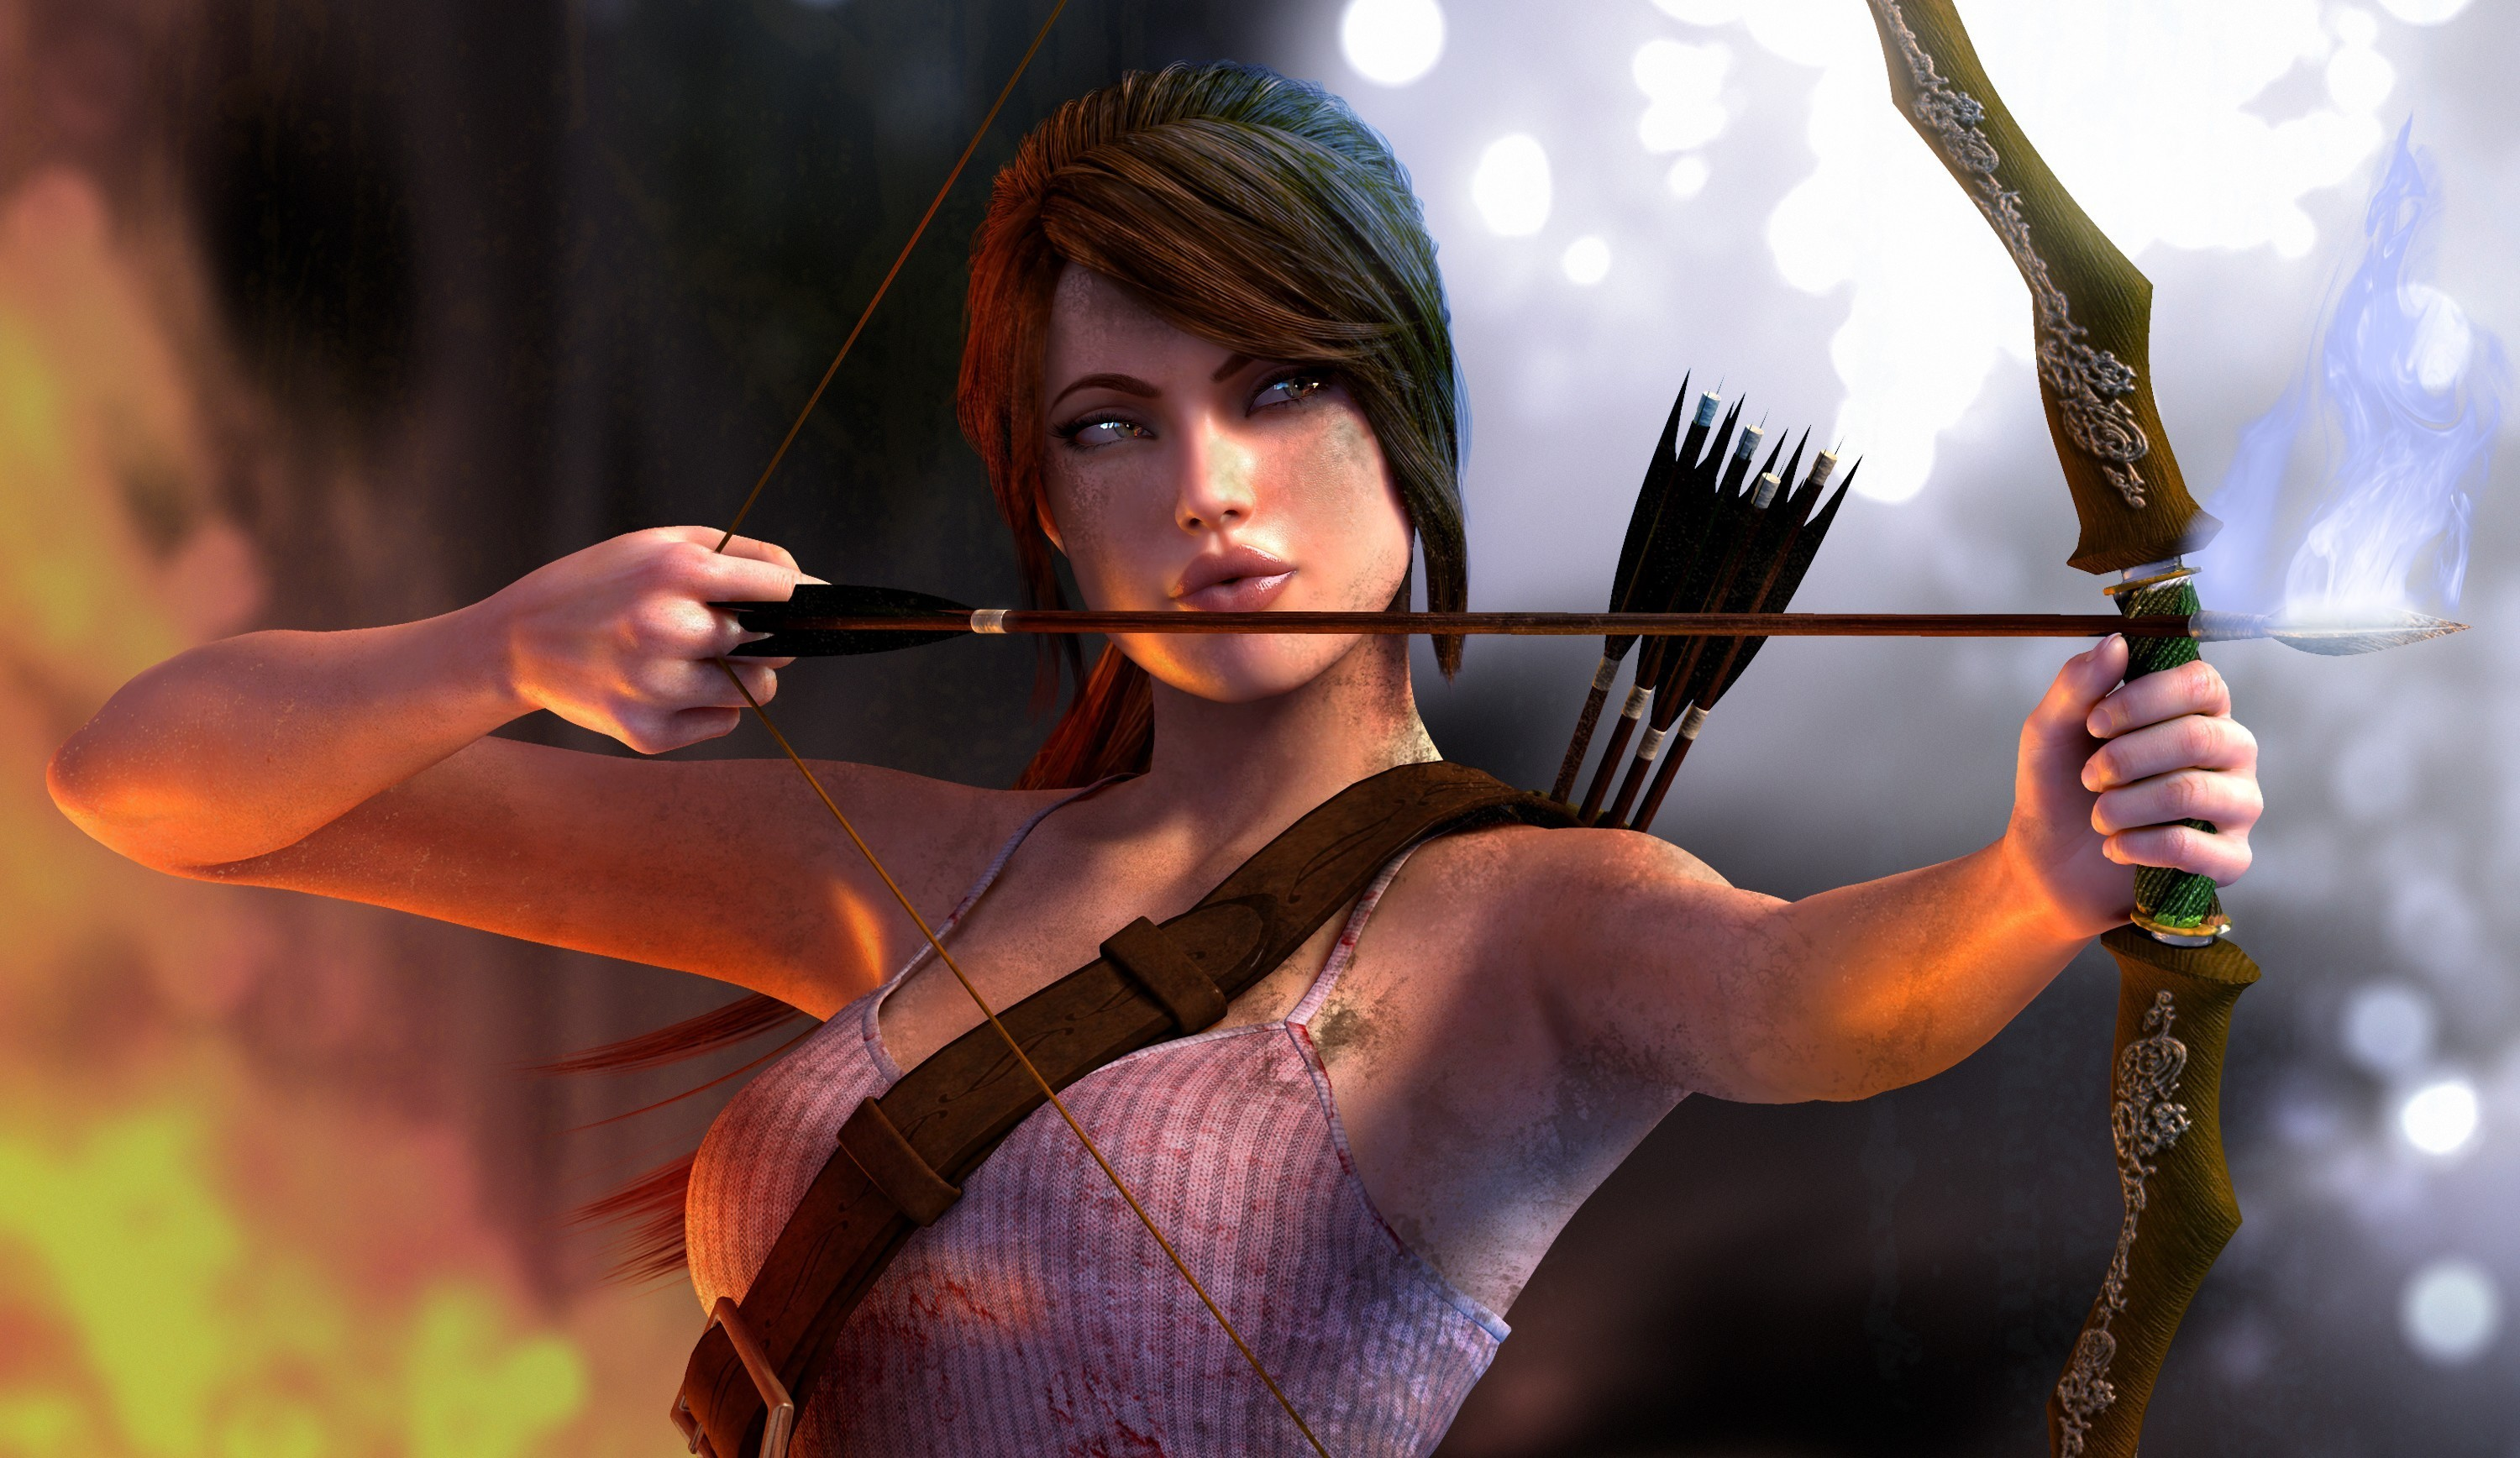 Three Female Game Characters You Just Might Fall In Love With